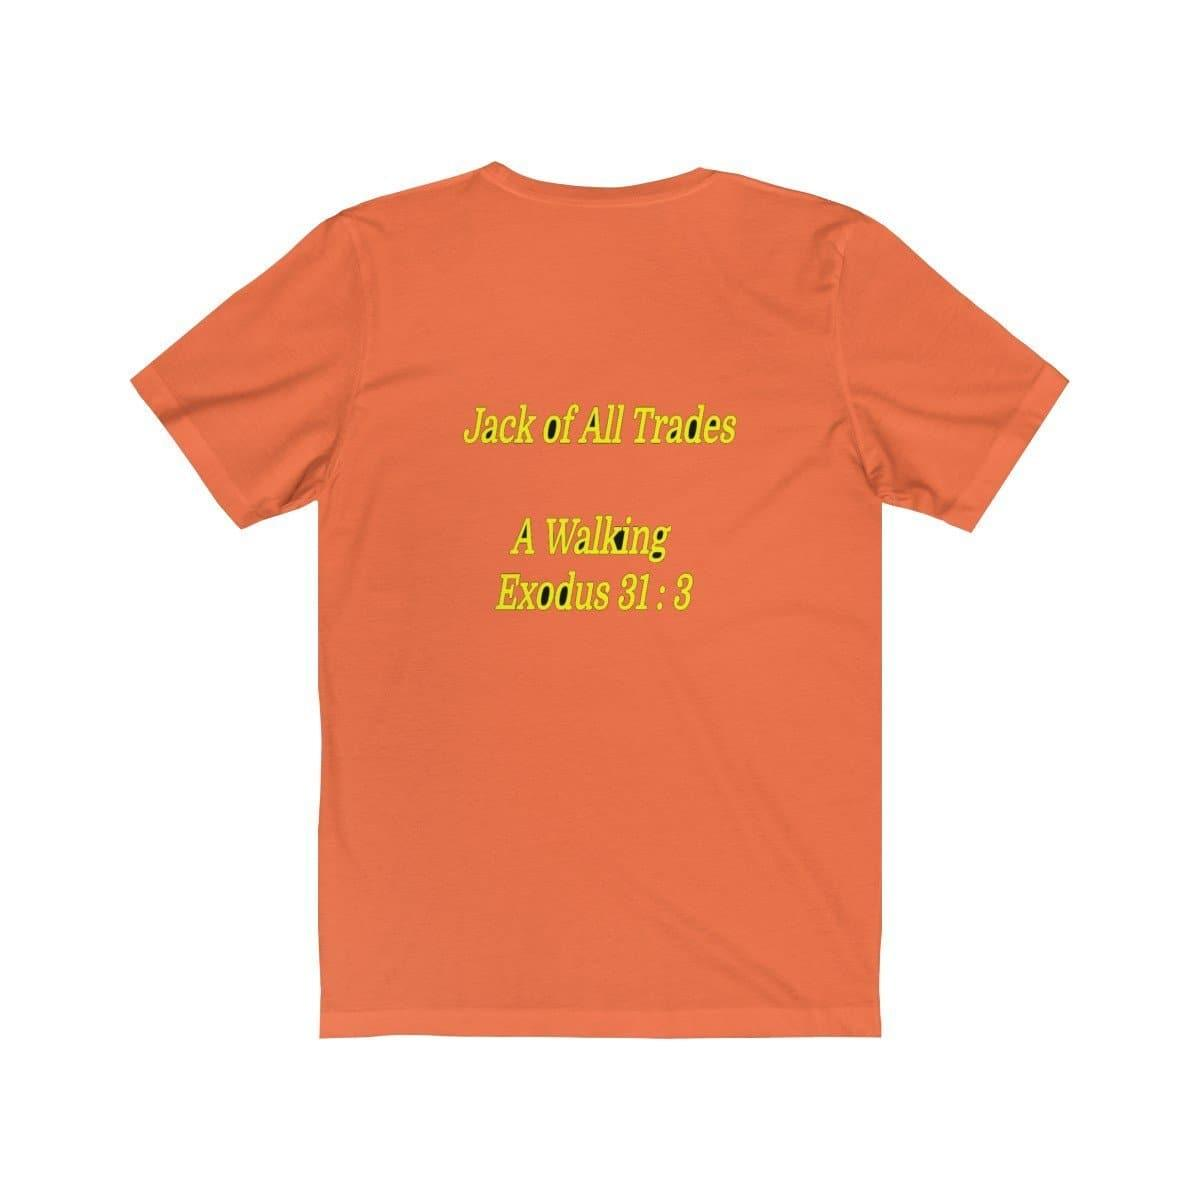 Jack of All Trades A Walking Exodus 31:3  Unisex Tee - Tie-Fly